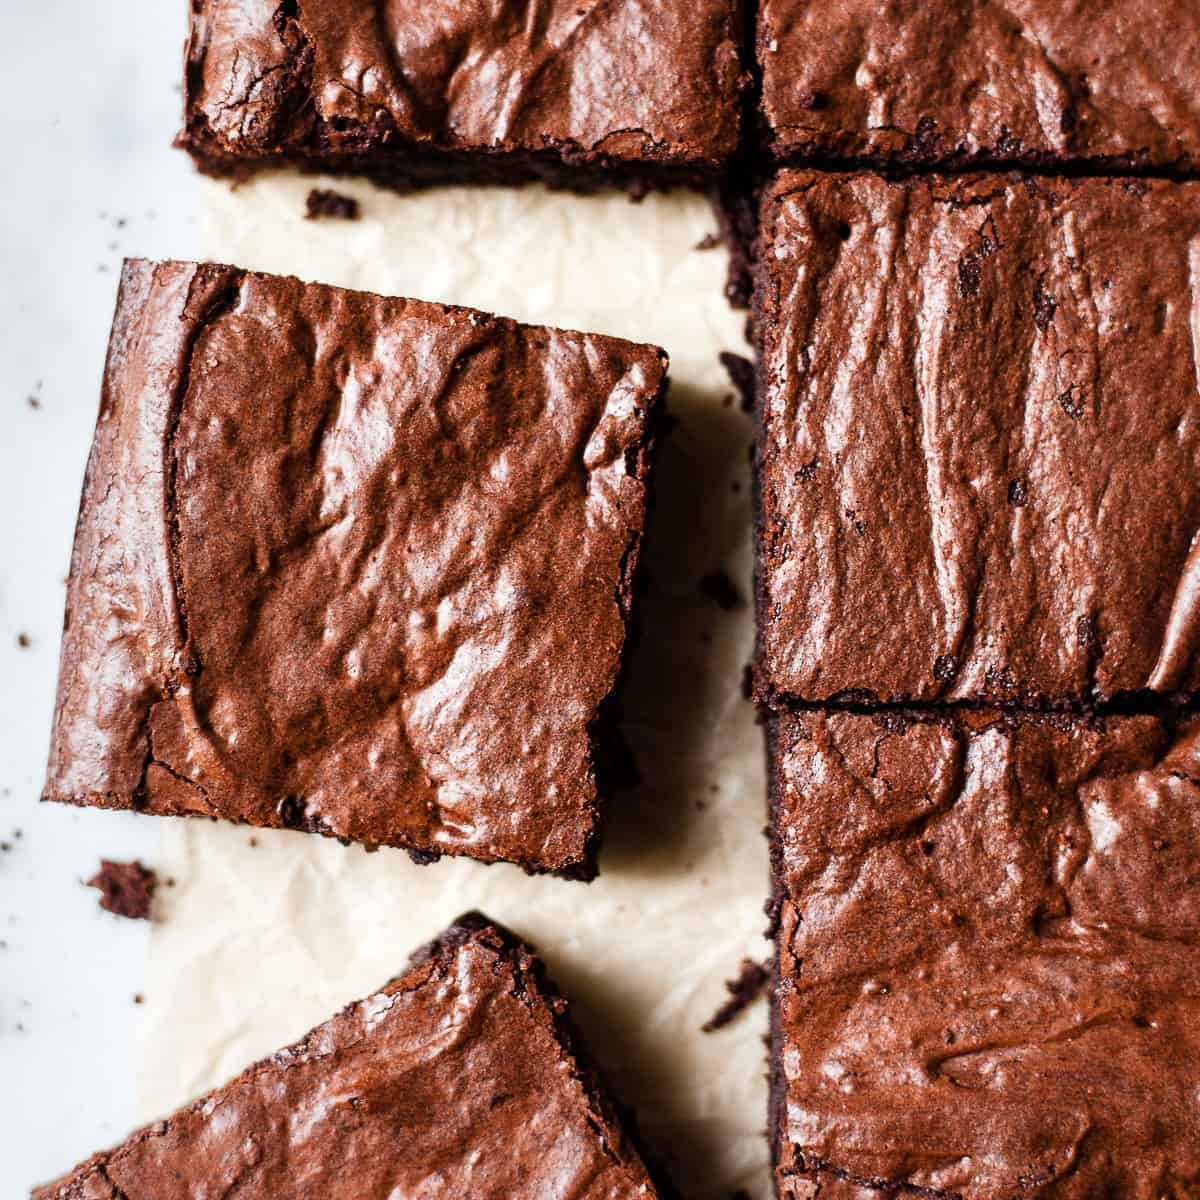 Chocolate brownies on a baking paper.